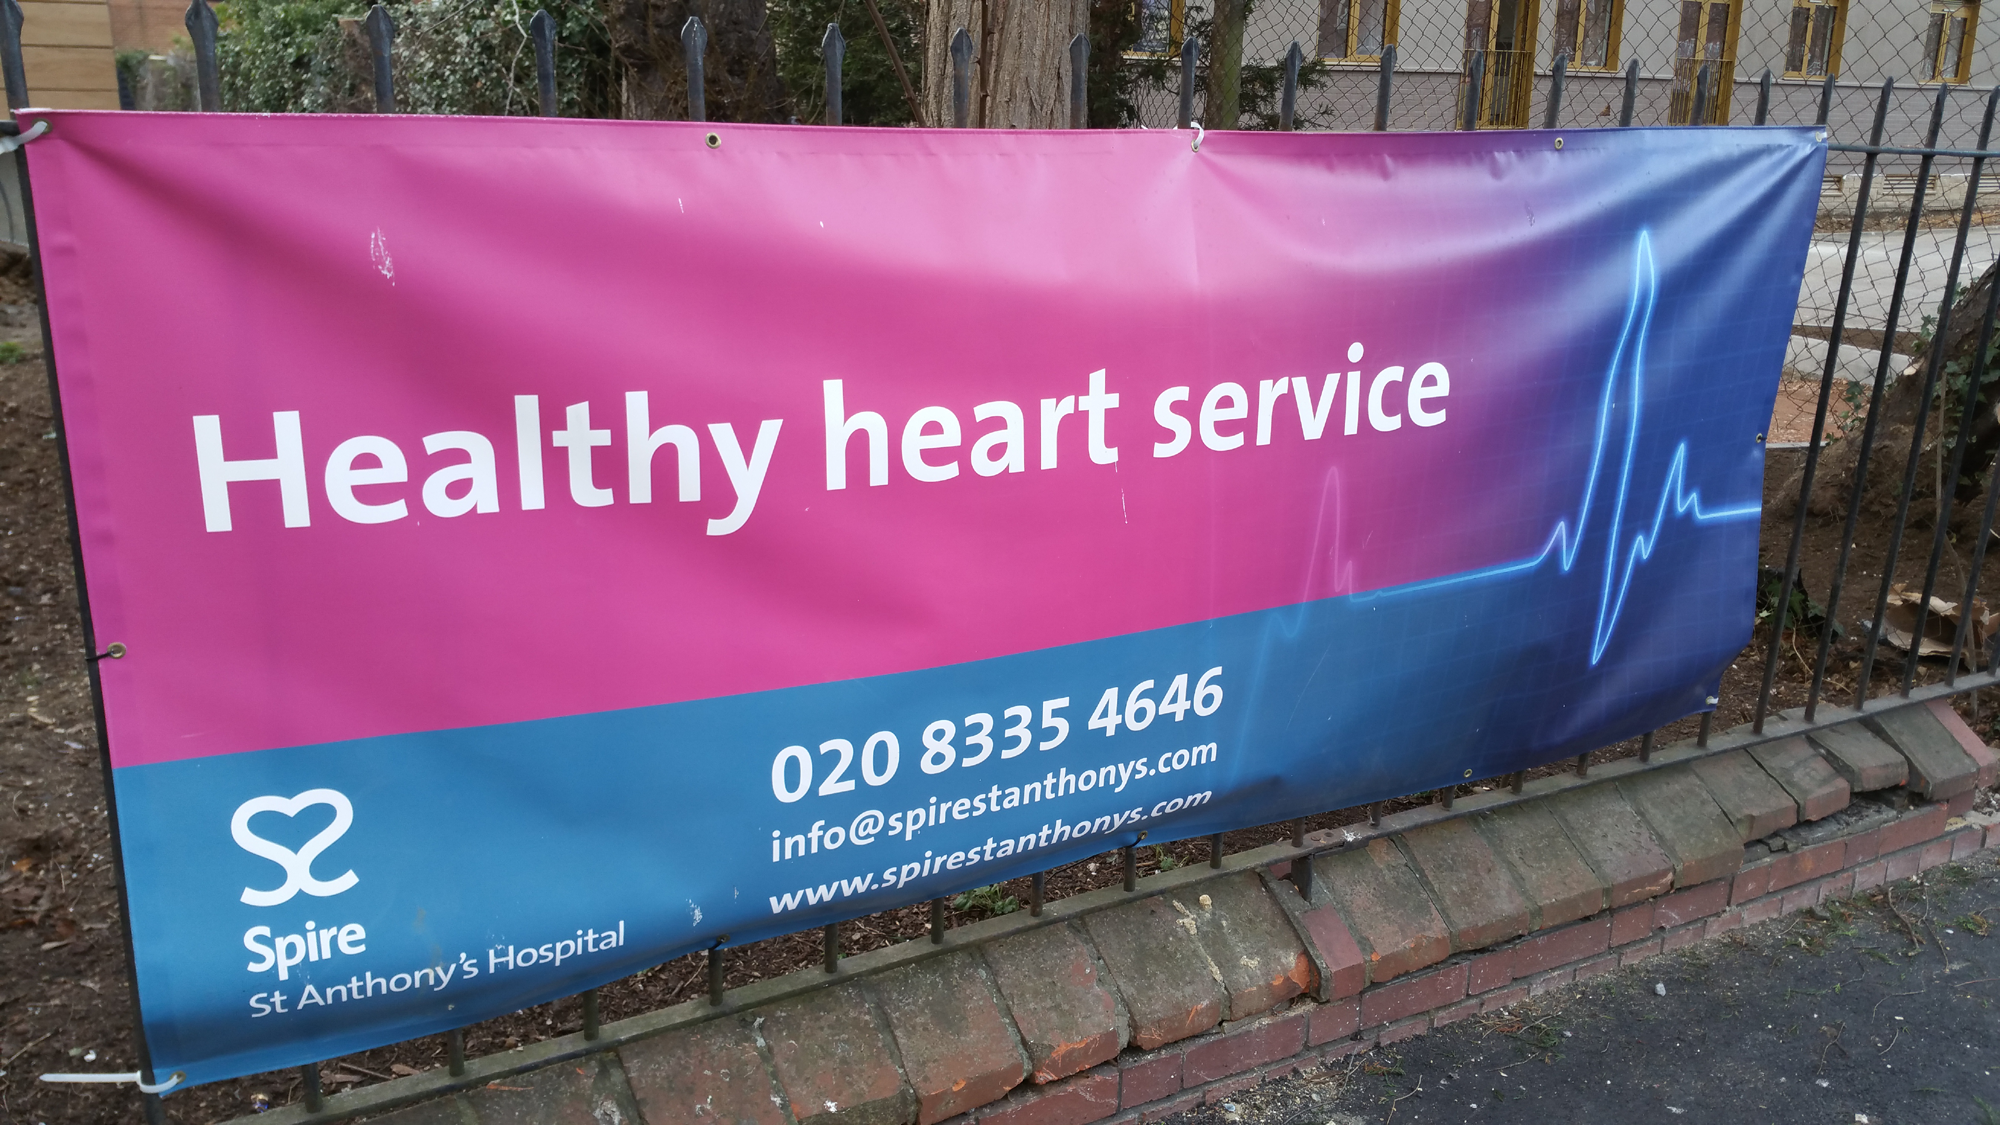 Spire St Anthony's Hospital - Healthy heart service